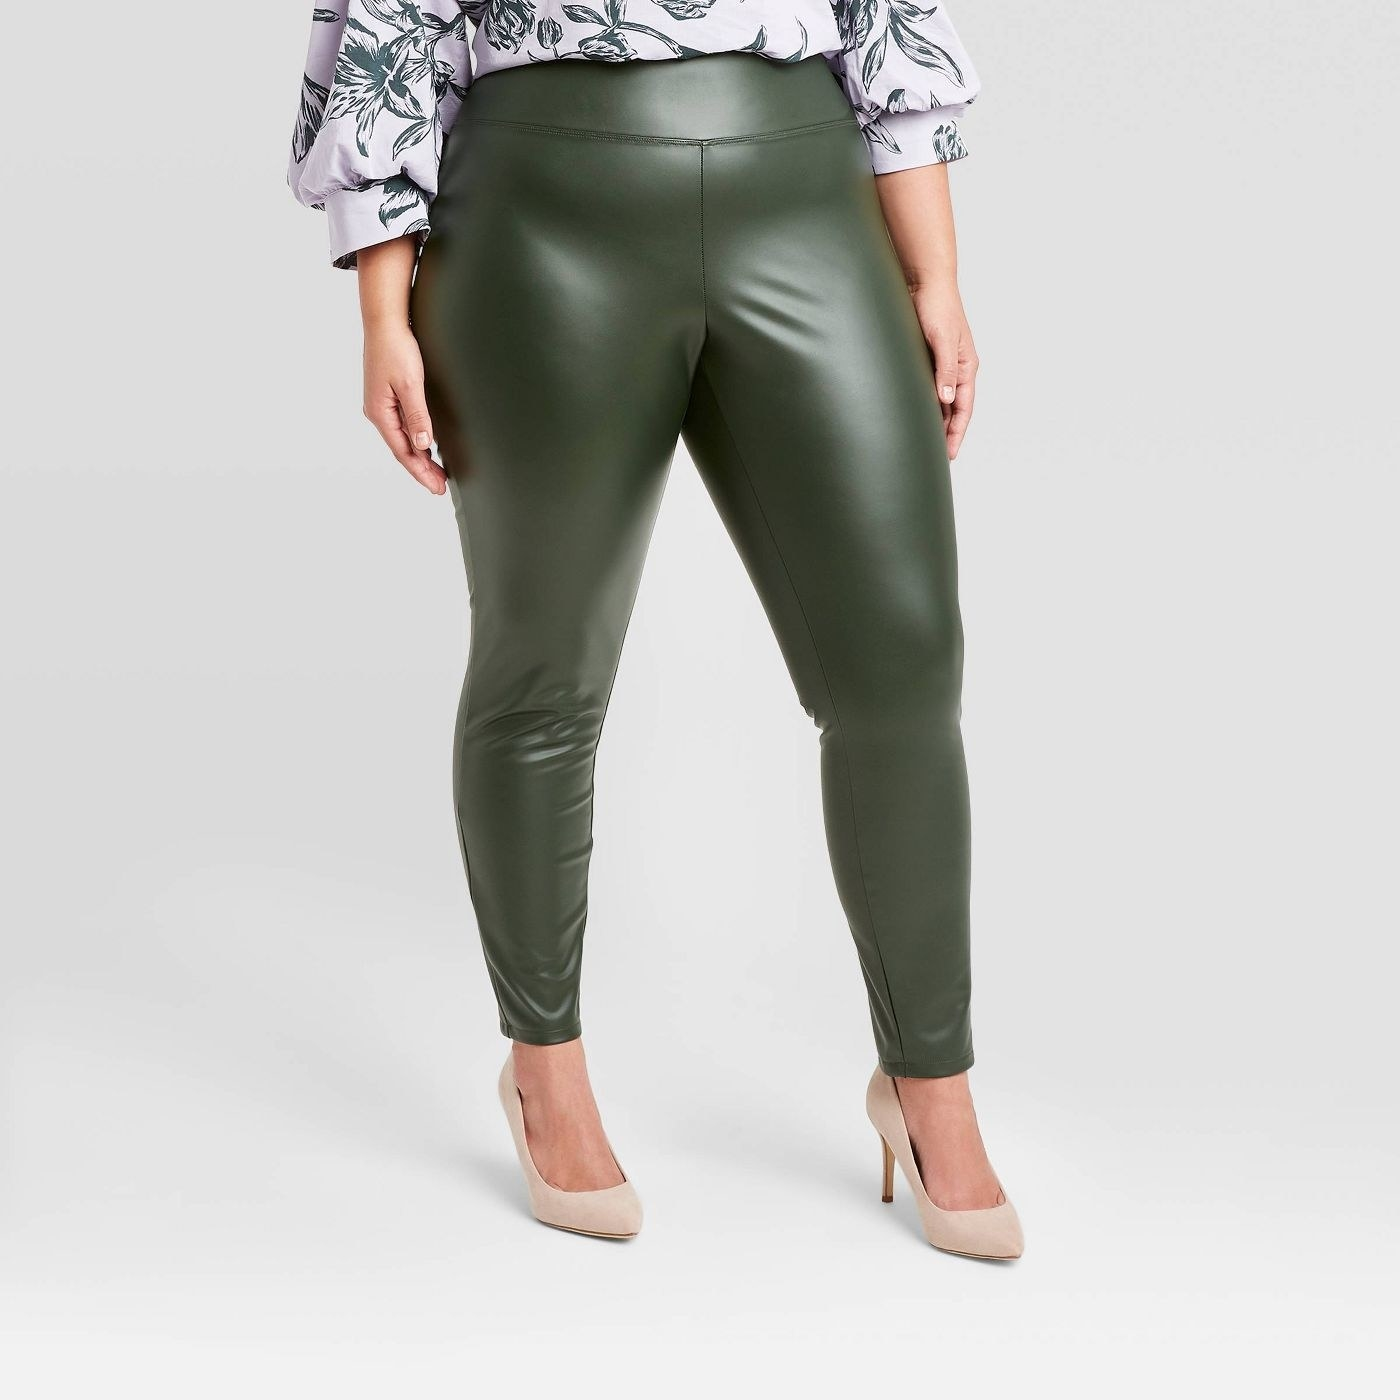 Model in green faux leather leggings